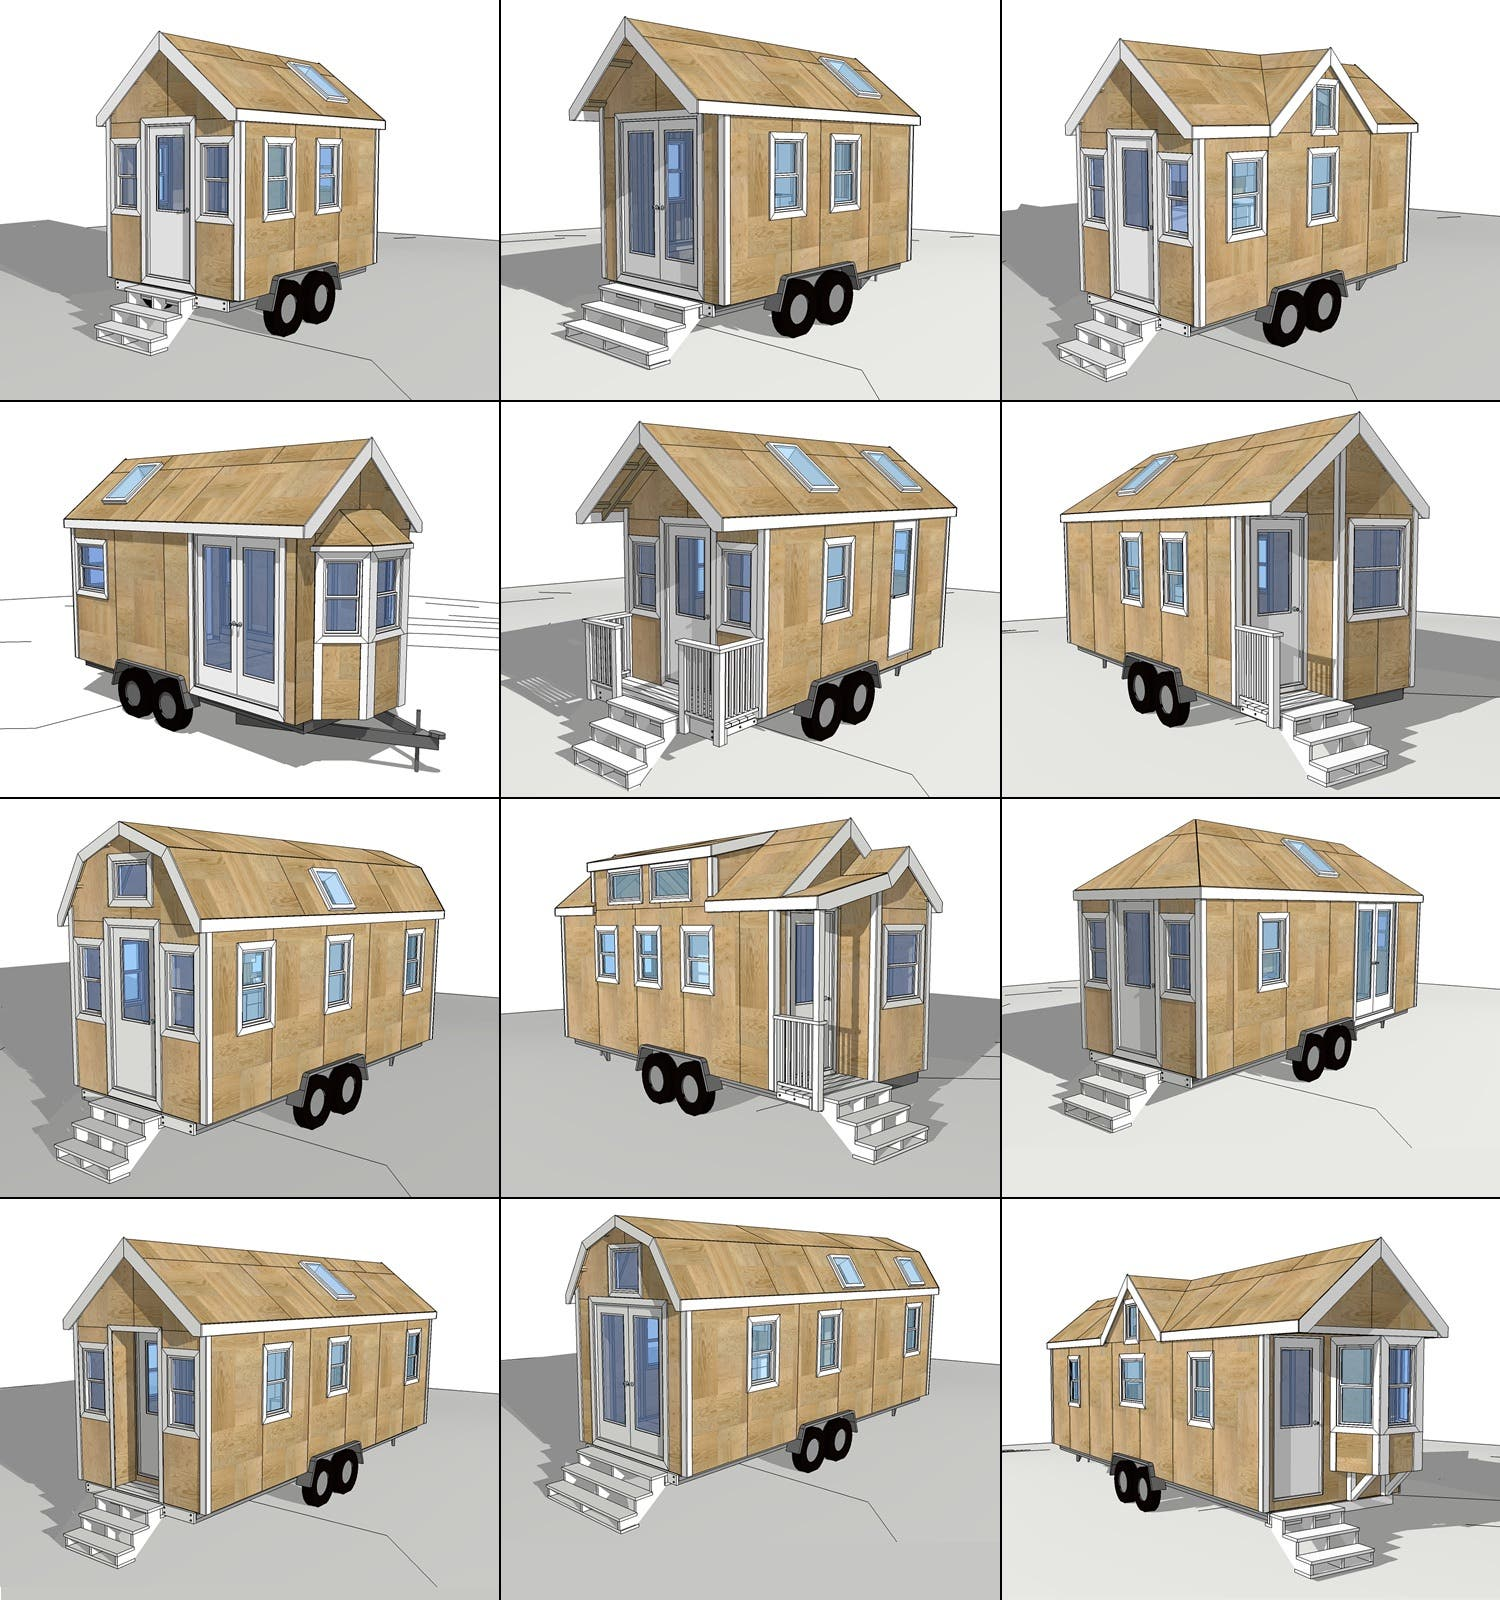 12 plan bundle 5 days 79 Small house pictures and plans